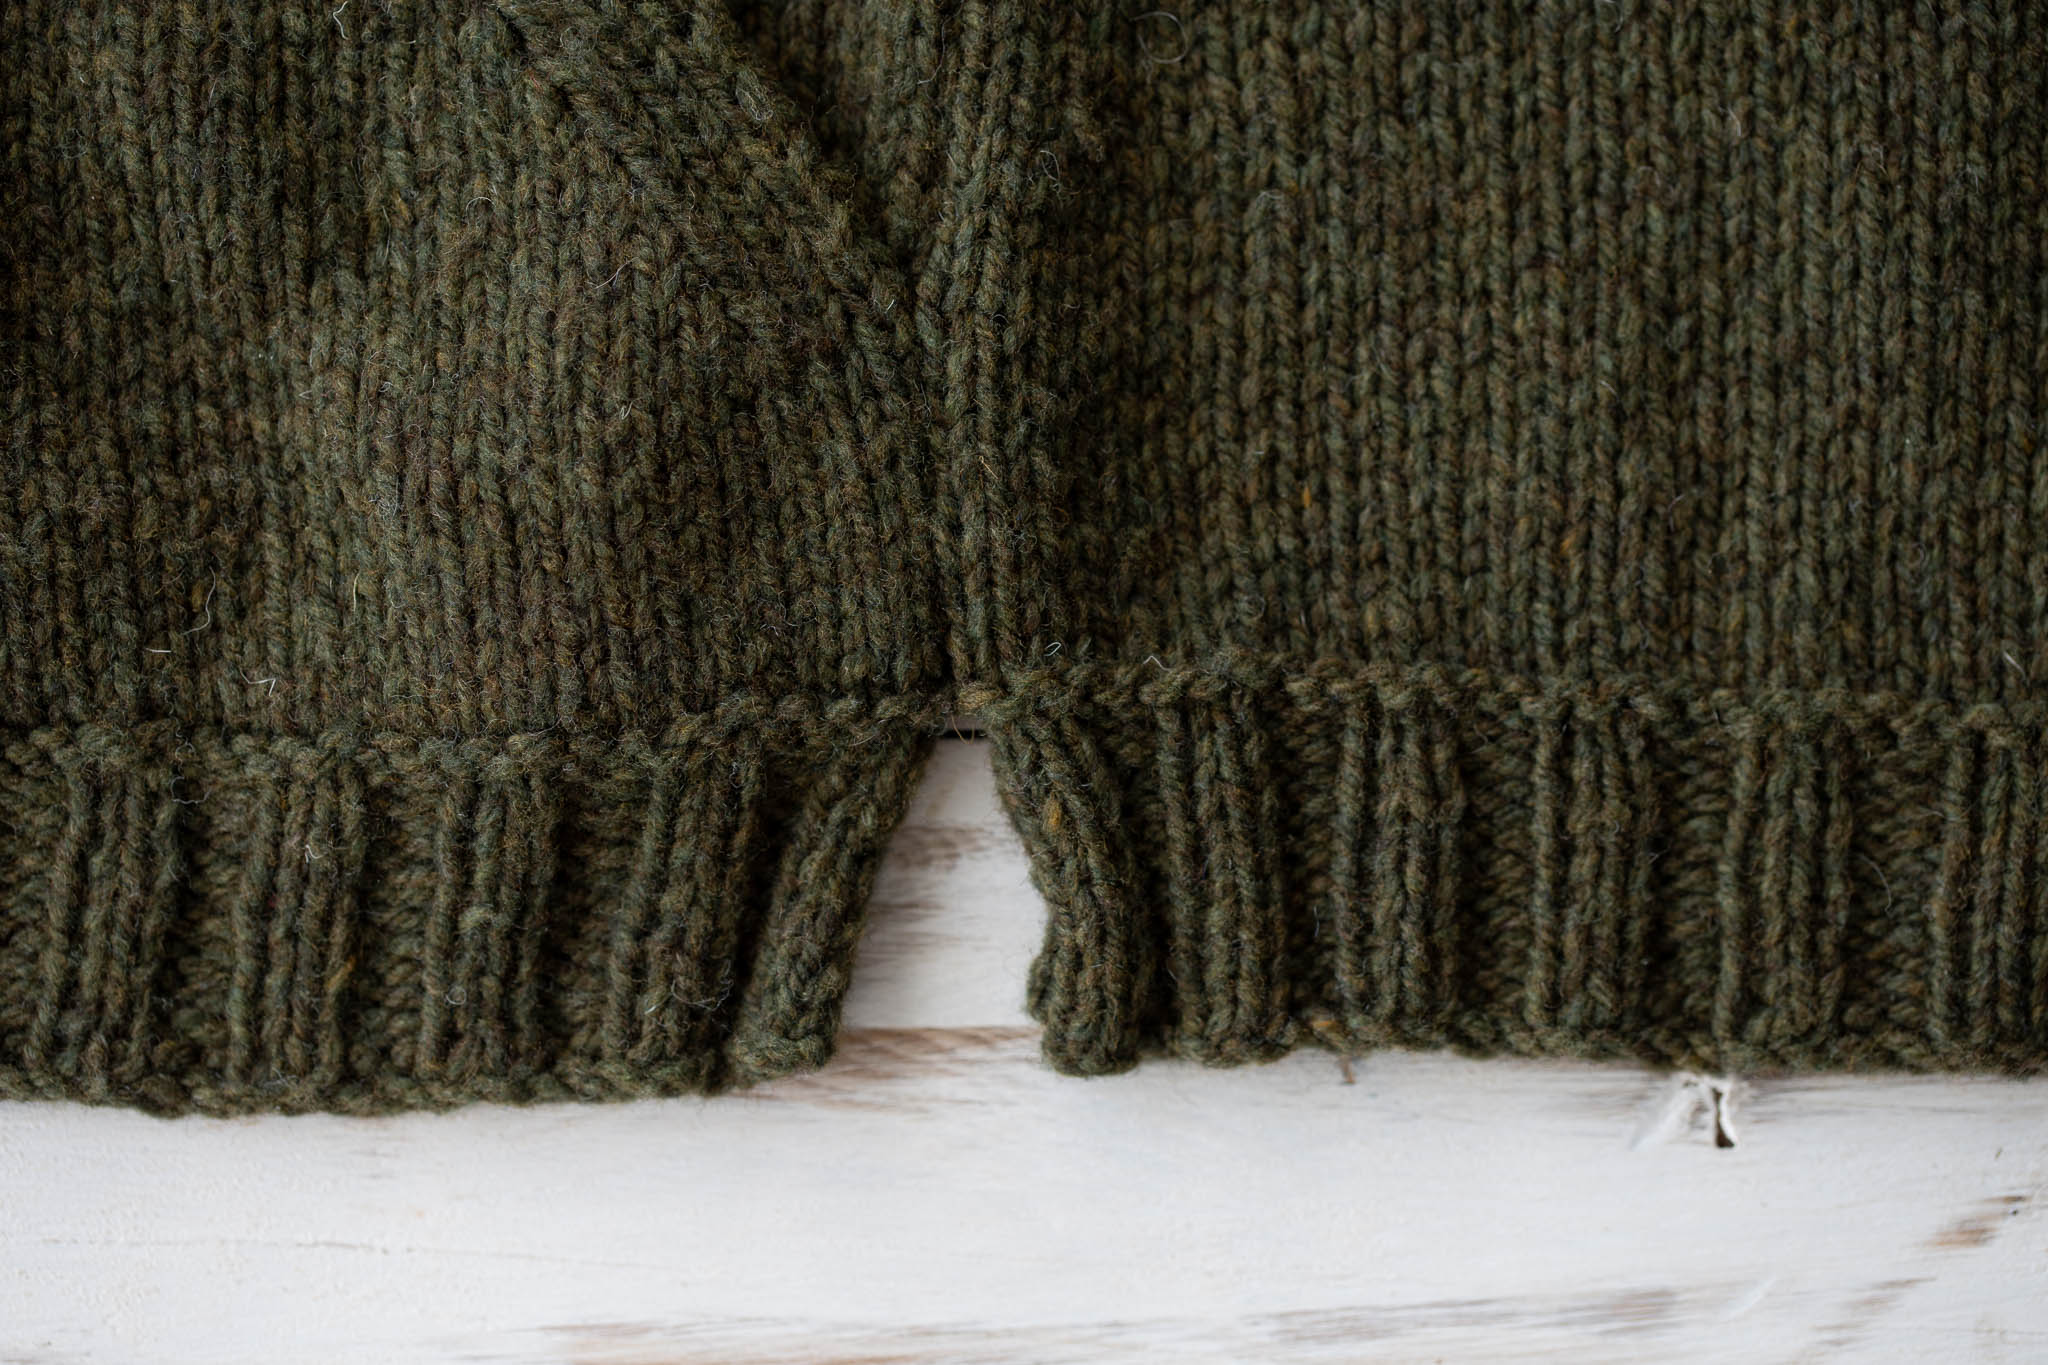 Use mattress stitch to seam the sleeve and side, leaving the ribbing open at the bottom for side slits.